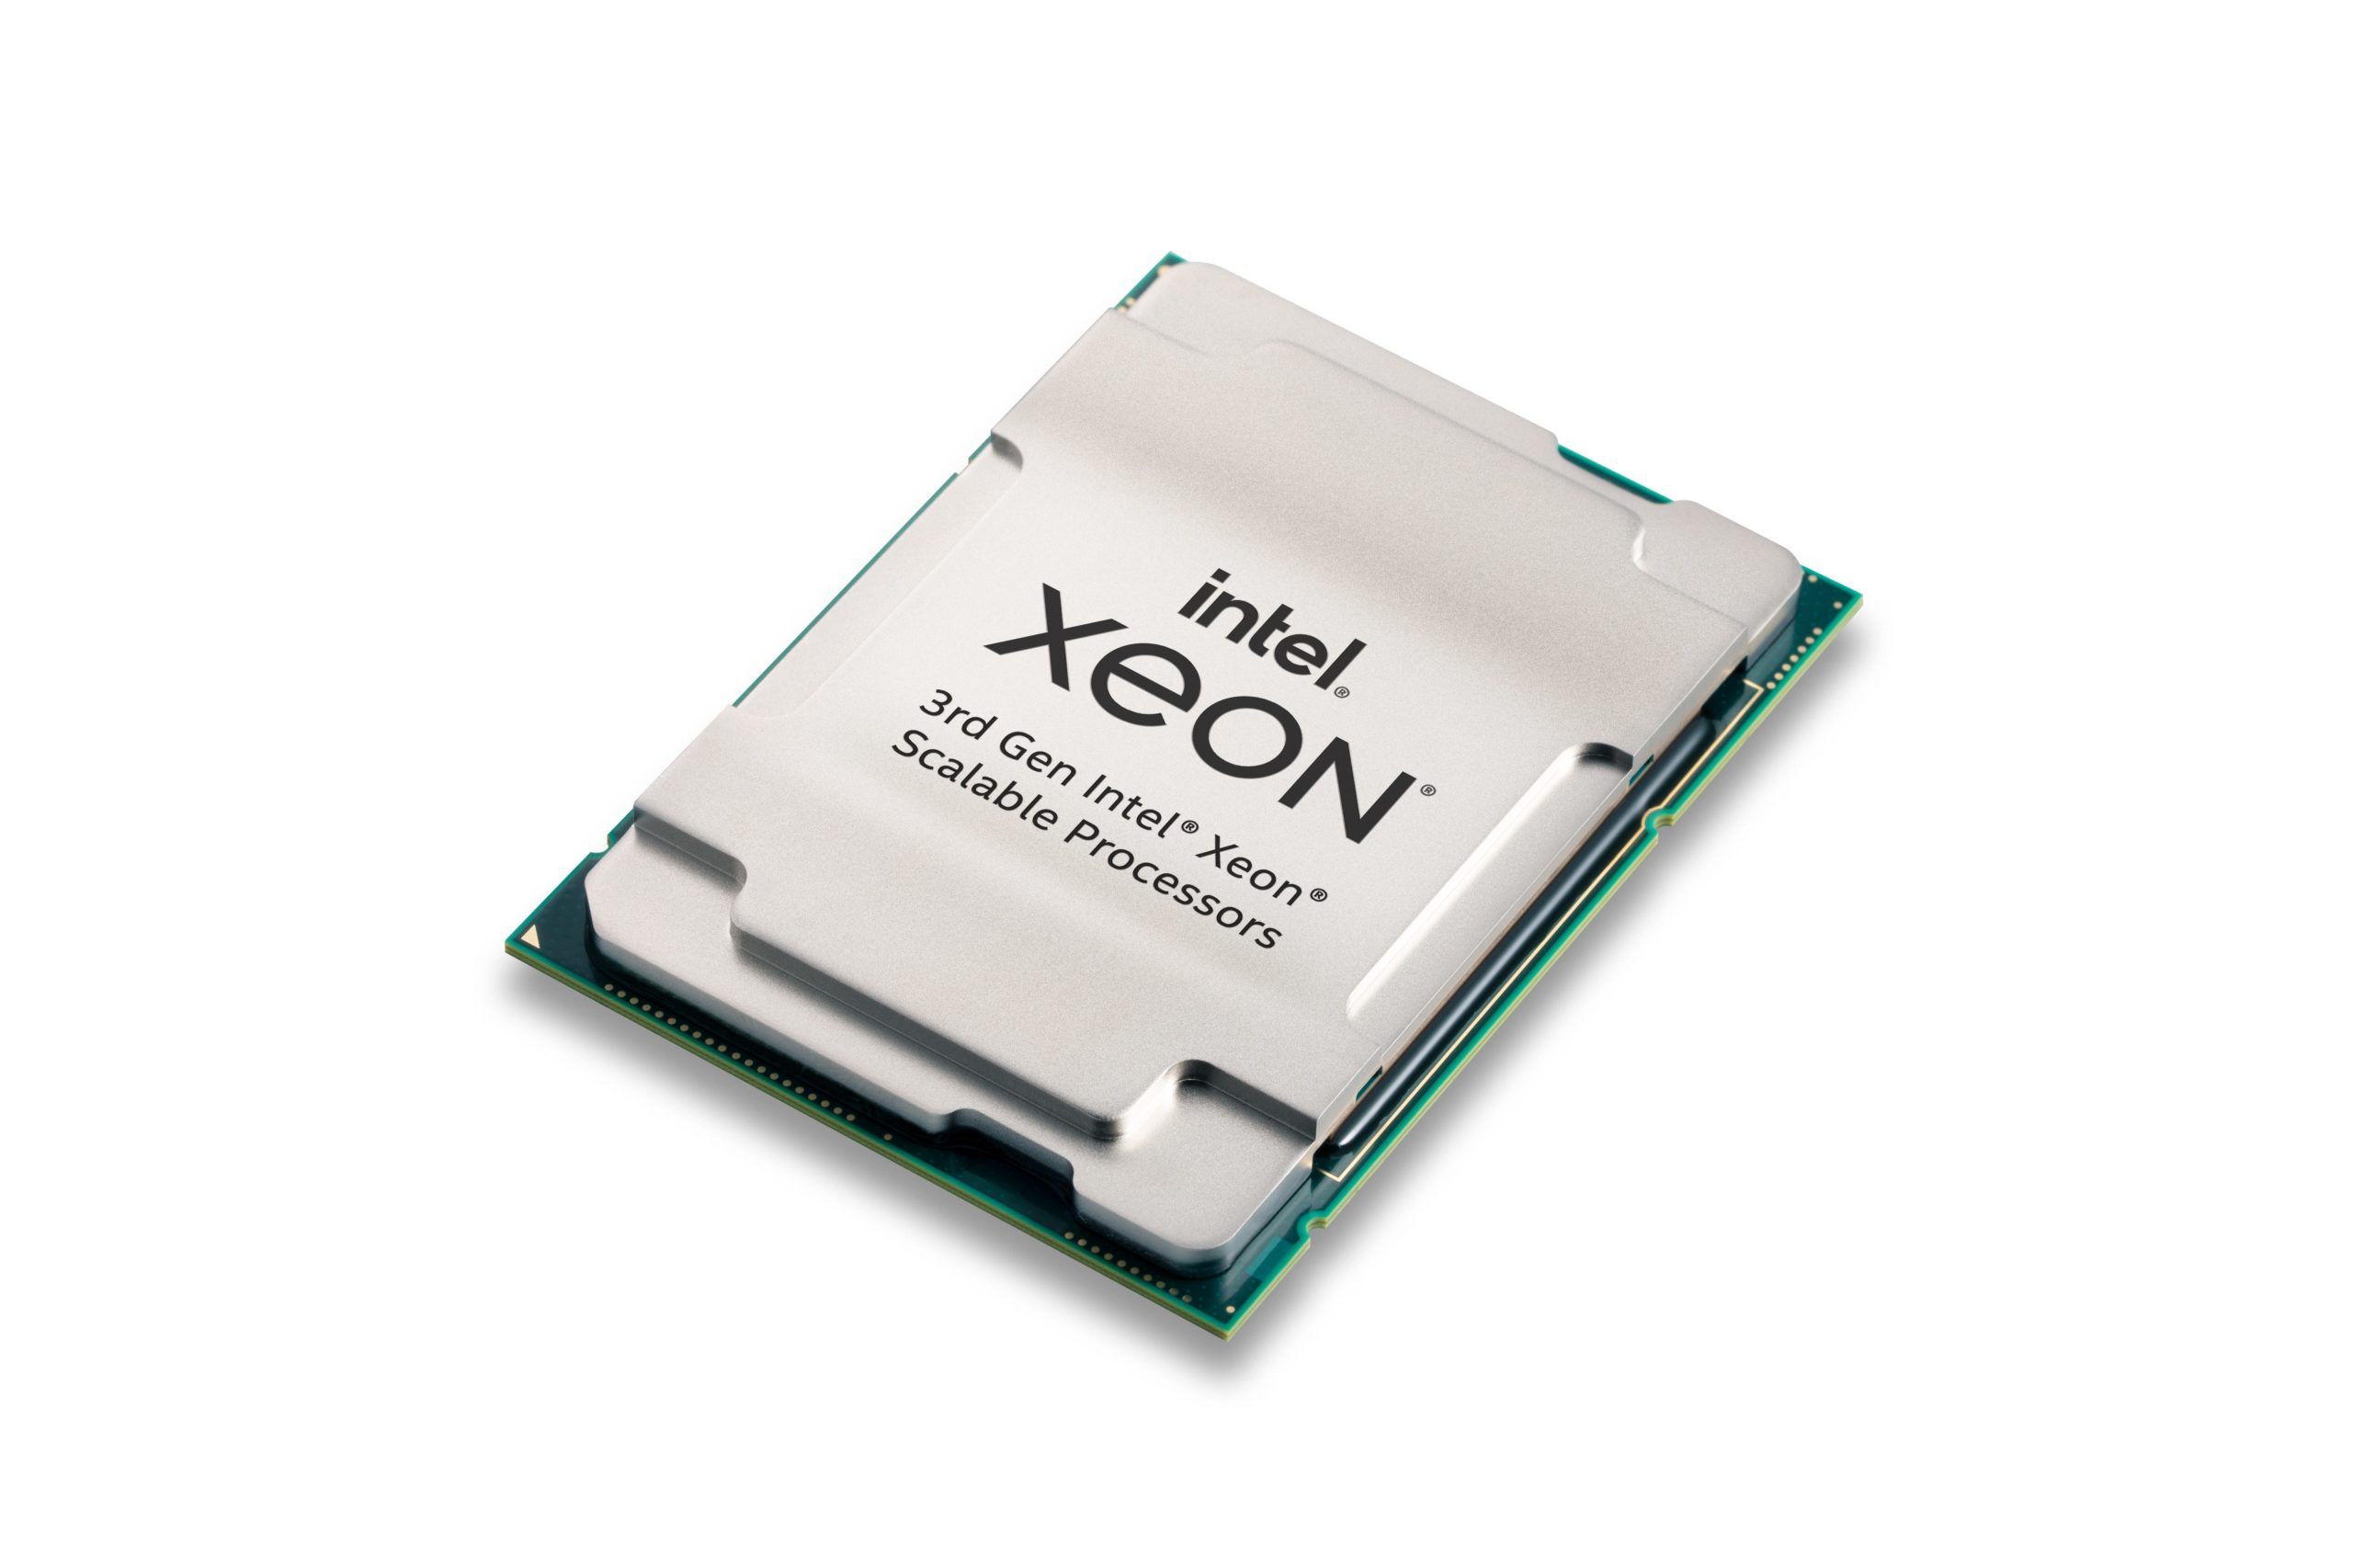 Intel-3rd-Gen-Xeon-Scalable-3